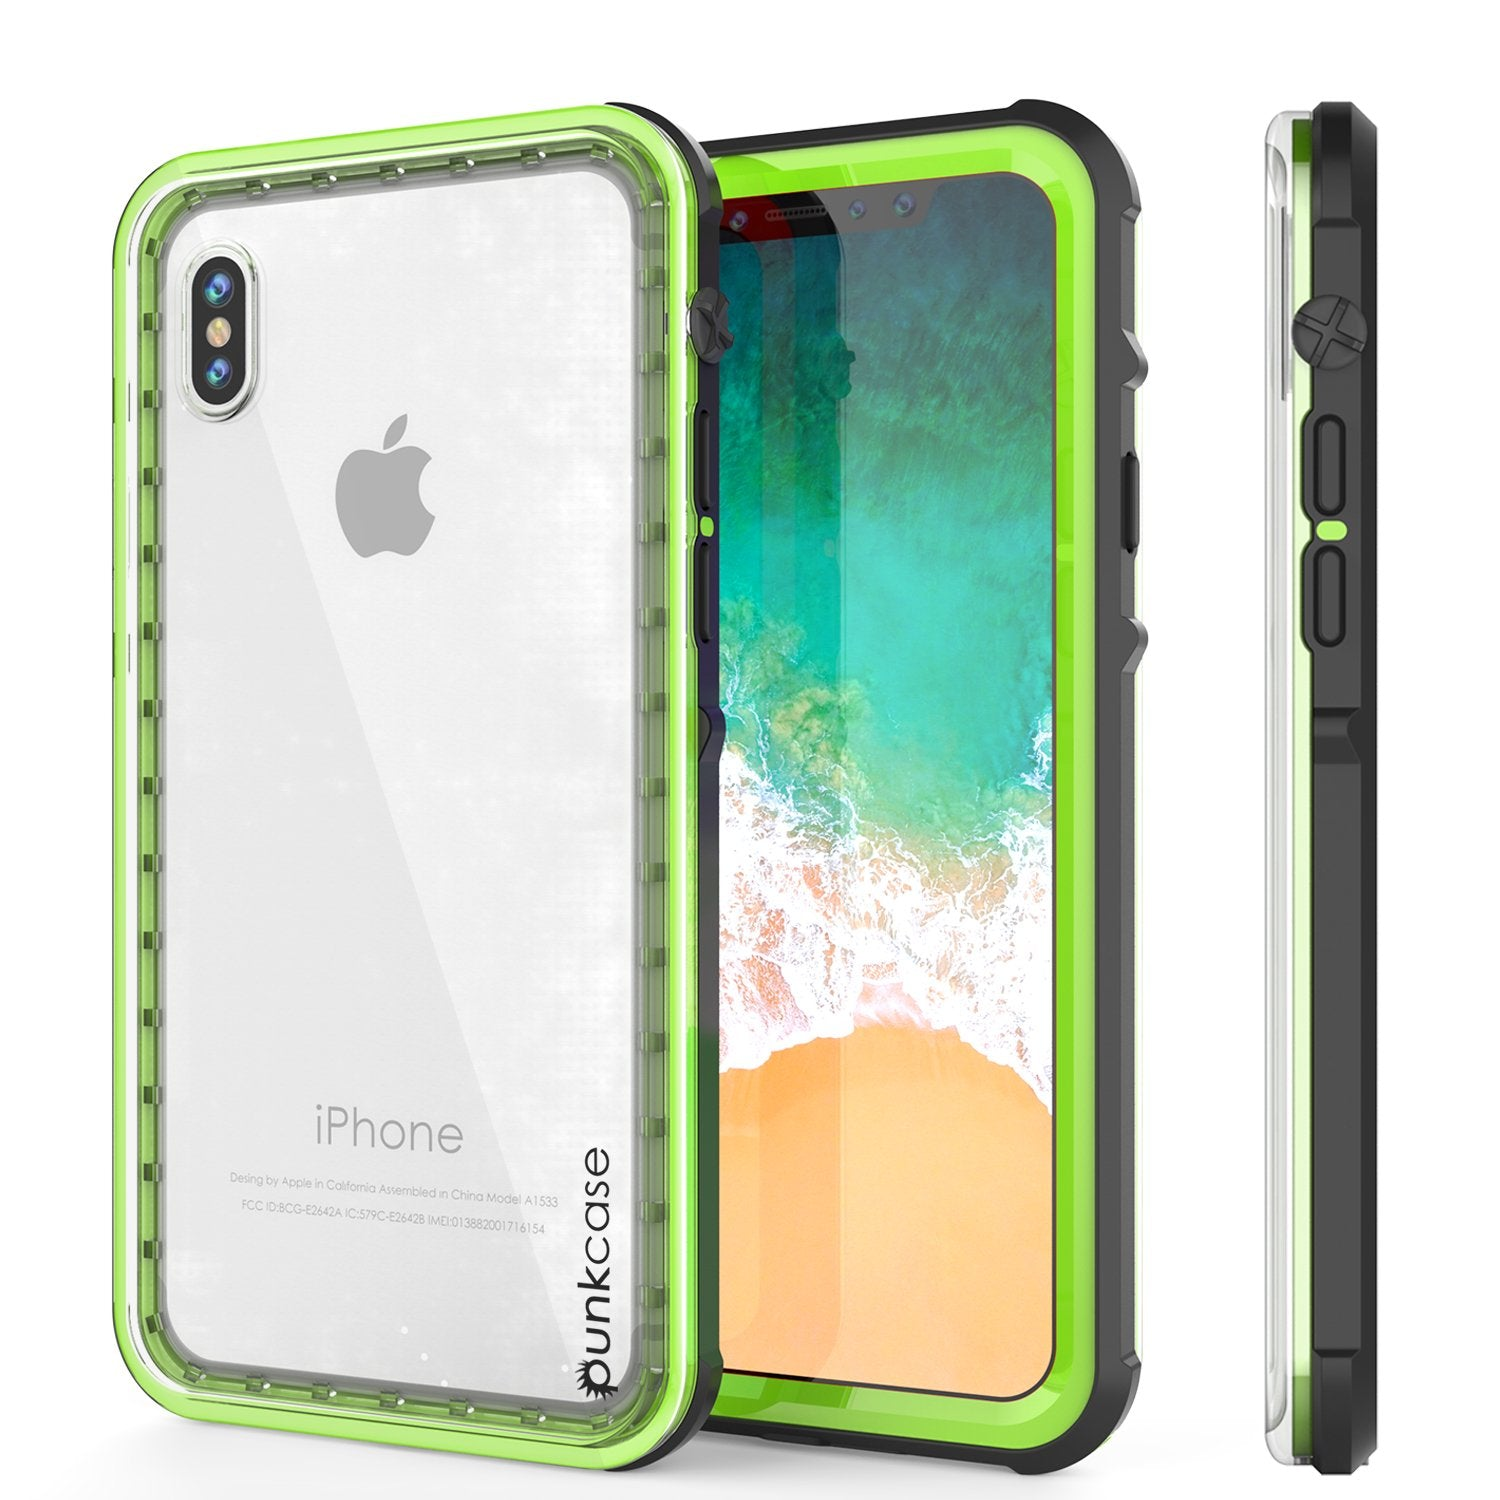 iPhone X Punkcase CRYSTAL SERIES Cover W/Screen Protector, Light Green